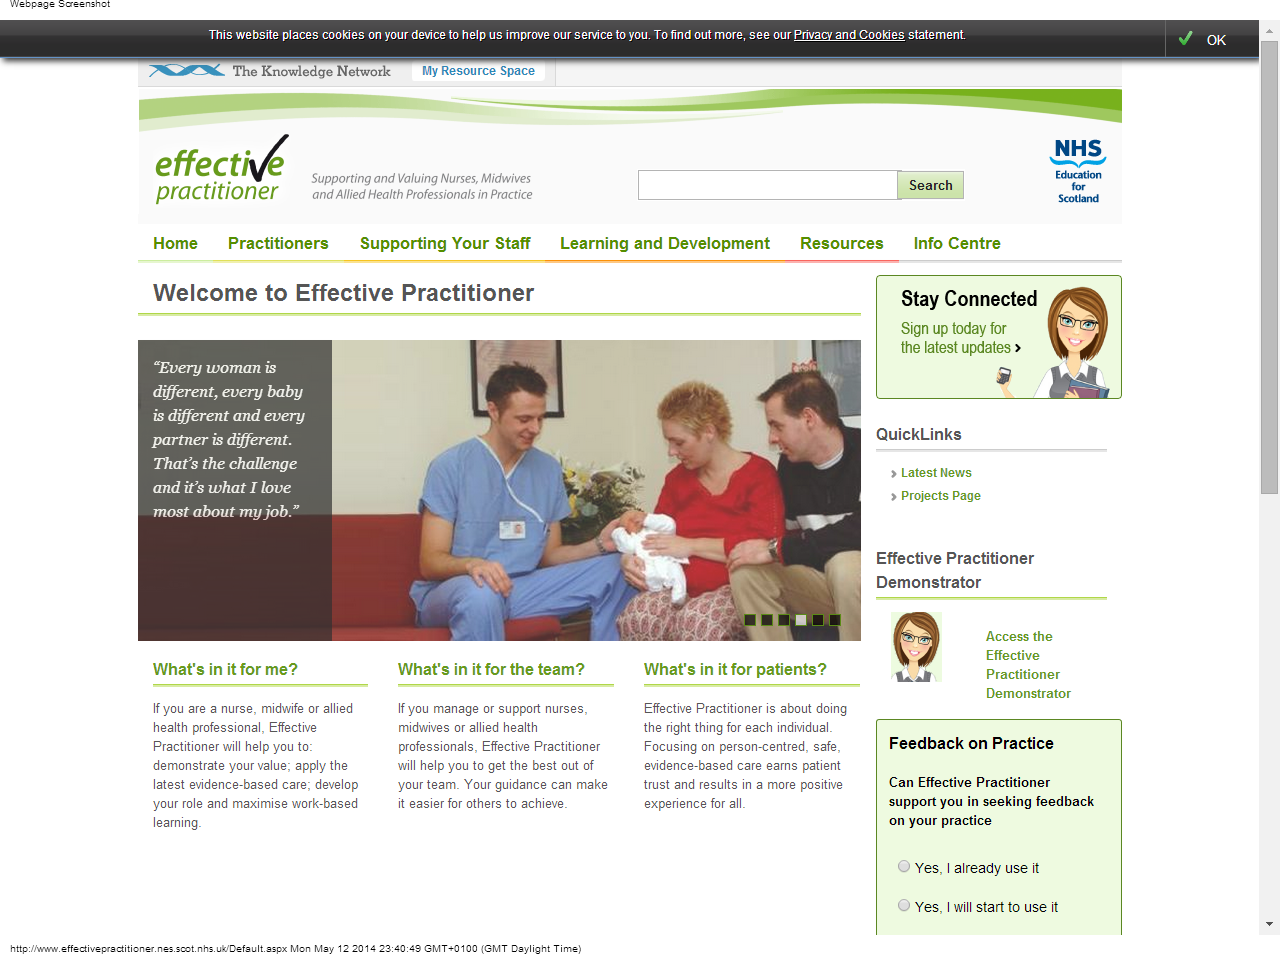 Effective Practitioner Website Nes Will Help You To Demonstrate Your Value Apply The Latest Evidence Based Care Develo Practitioner Learning How To Apply